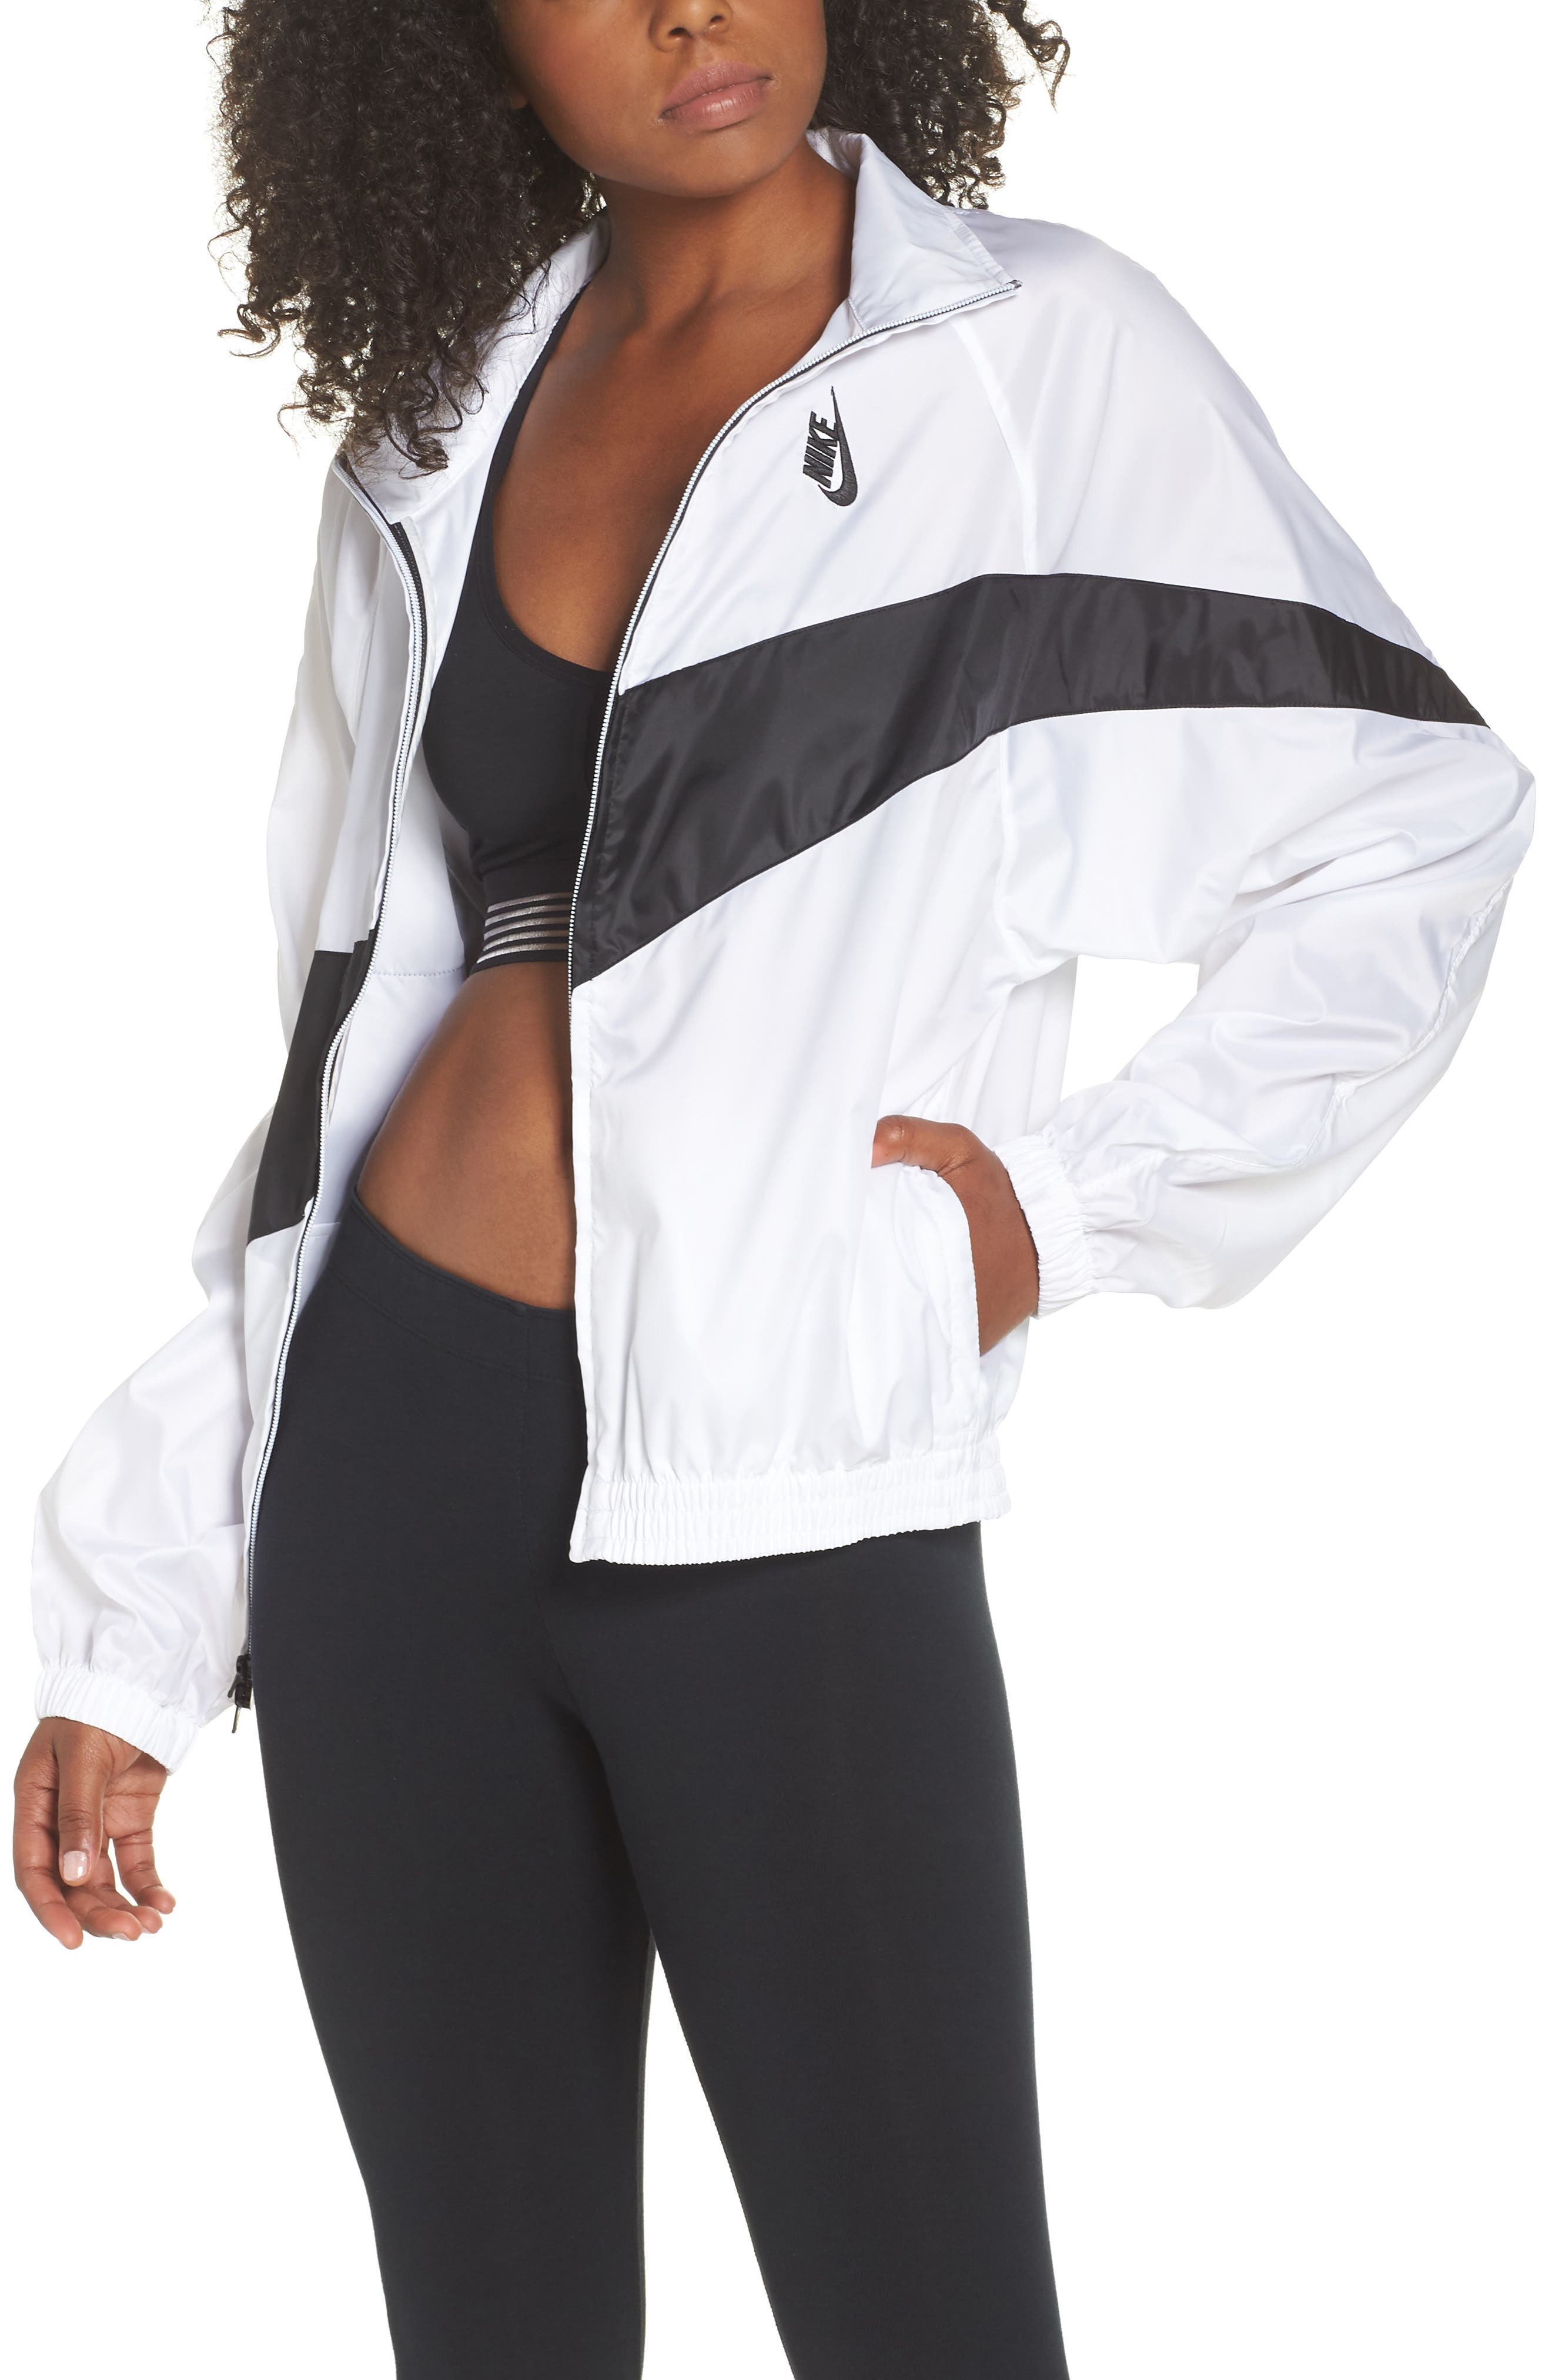 NikeLab Collection Unisex Heritage Jacket,                         Main,                         color, 100